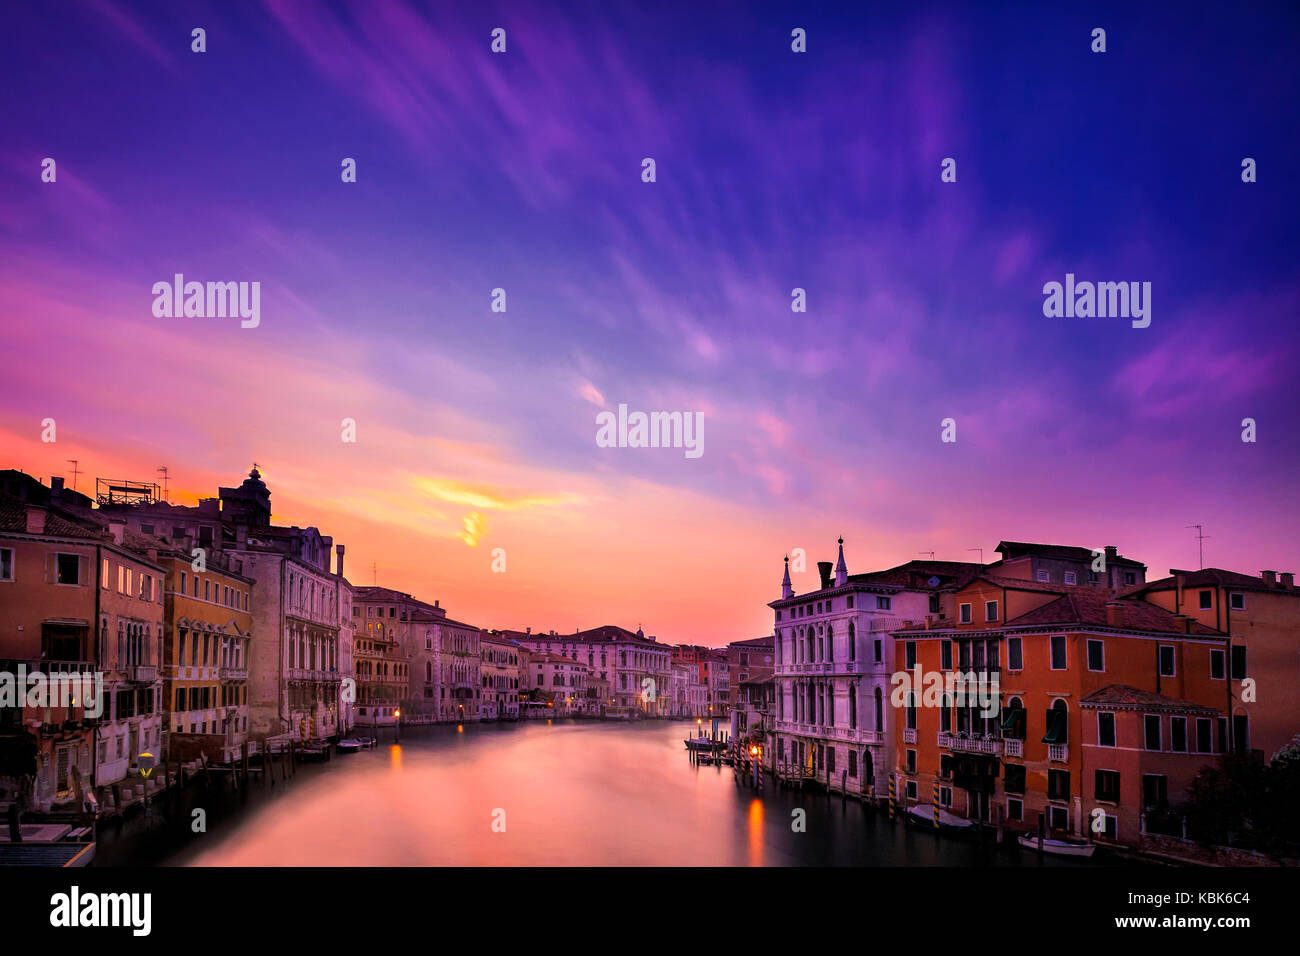 Long exposure of dramatic skies at sunset over Venice, Italy seen from the Accademia Bridge - Stock Image